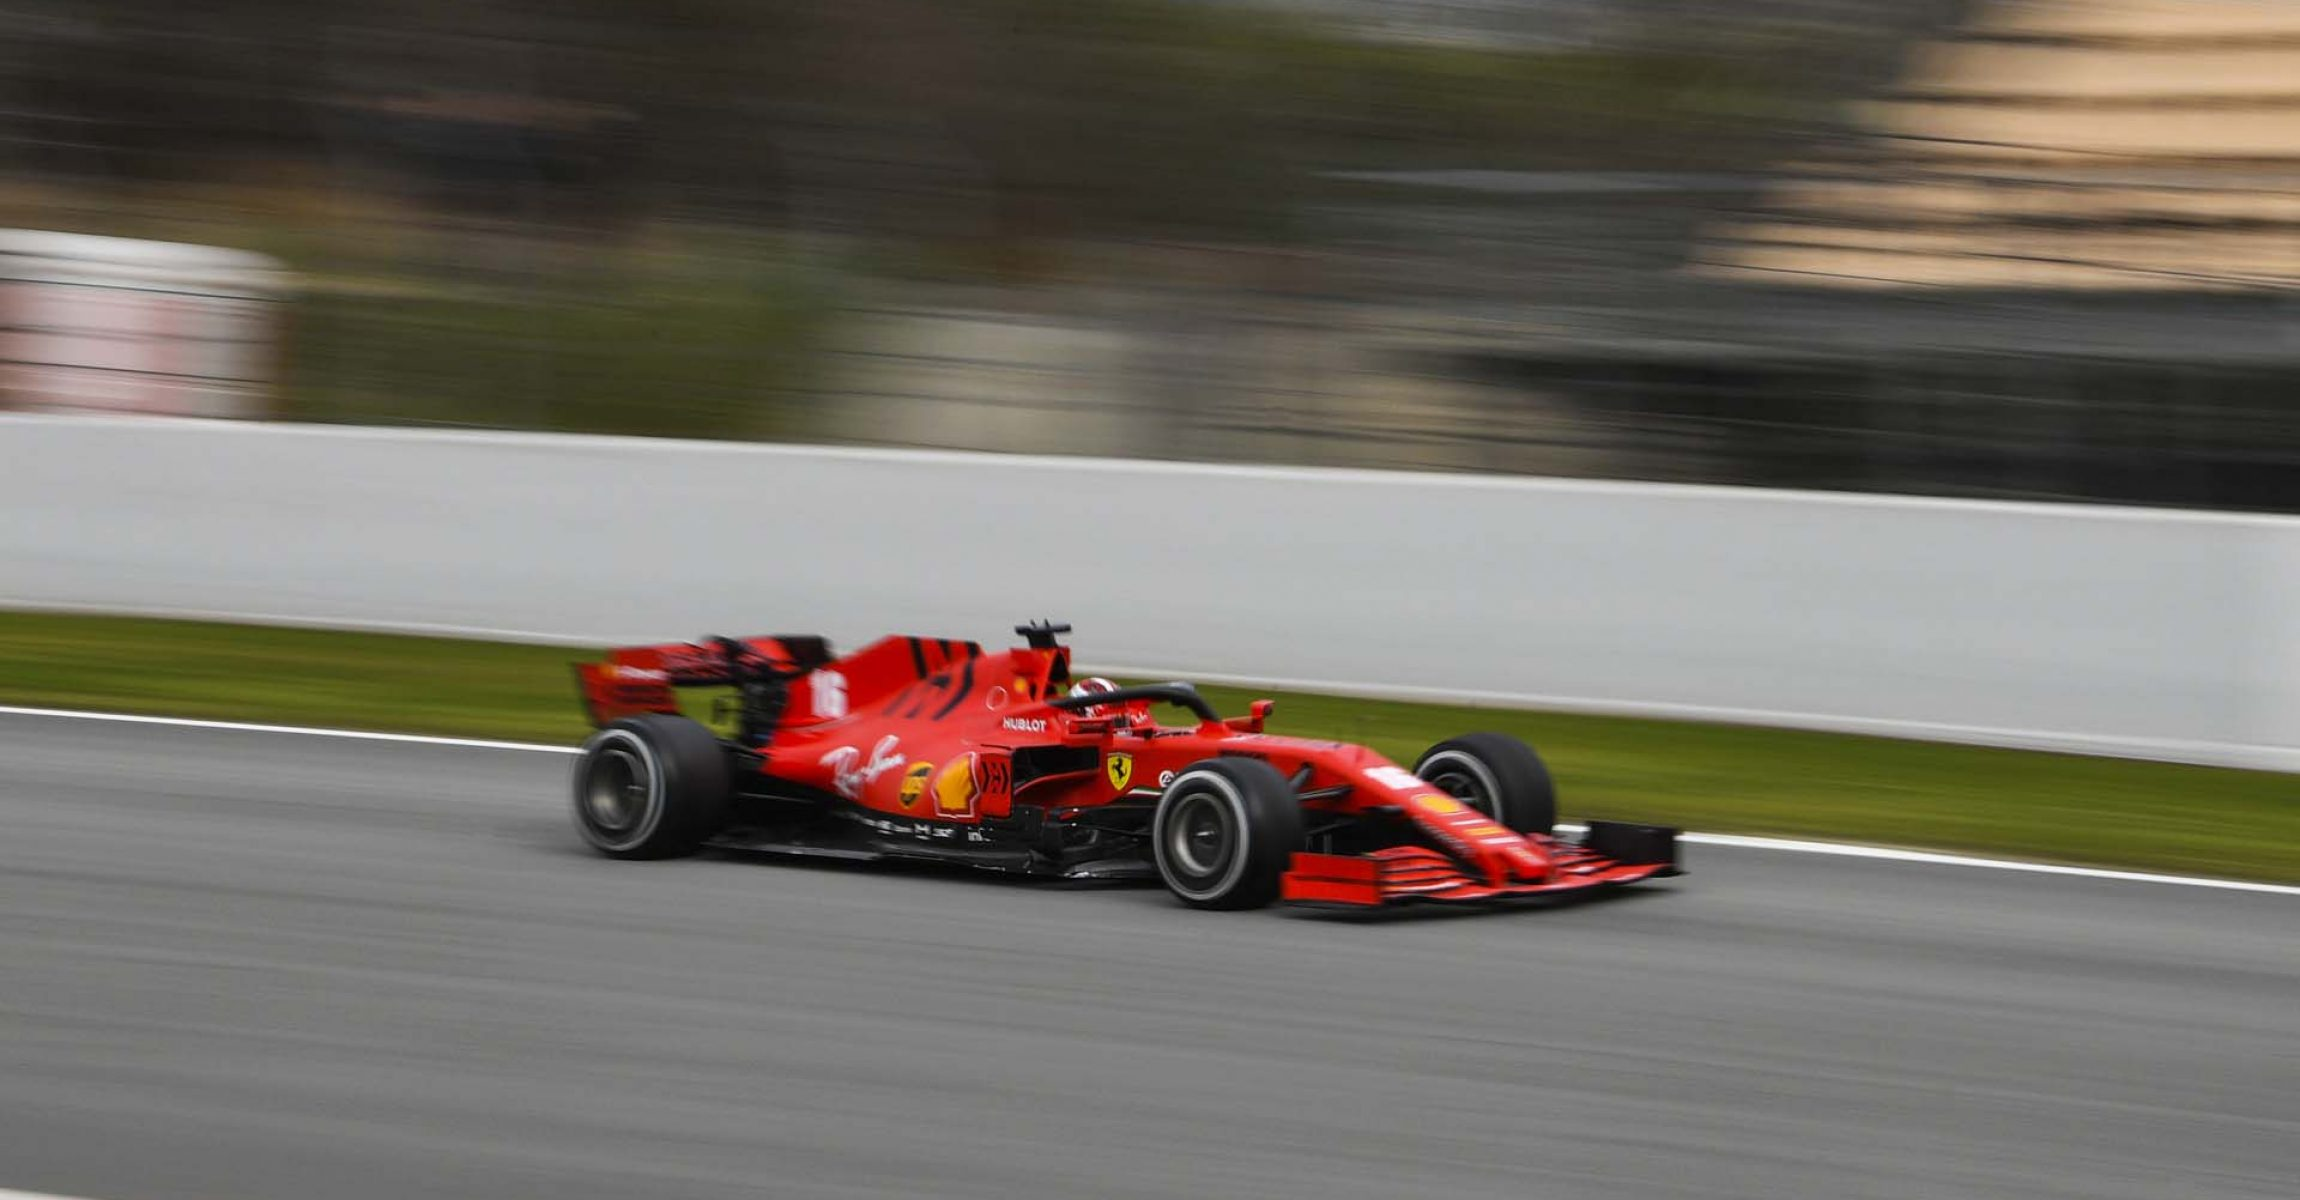 CIRCUIT DE BARCELONA-CATALUNYA, SPAIN - FEBRUARY 28: Charles Leclerc, Ferrari SF1000 during the Barcelona February testing II at Circuit de Barcelona-Catalunya on February 28, 2020 in Circuit de Barcelona-Catalunya, Spain. (Photo by Mark Sutton / LAT Images)